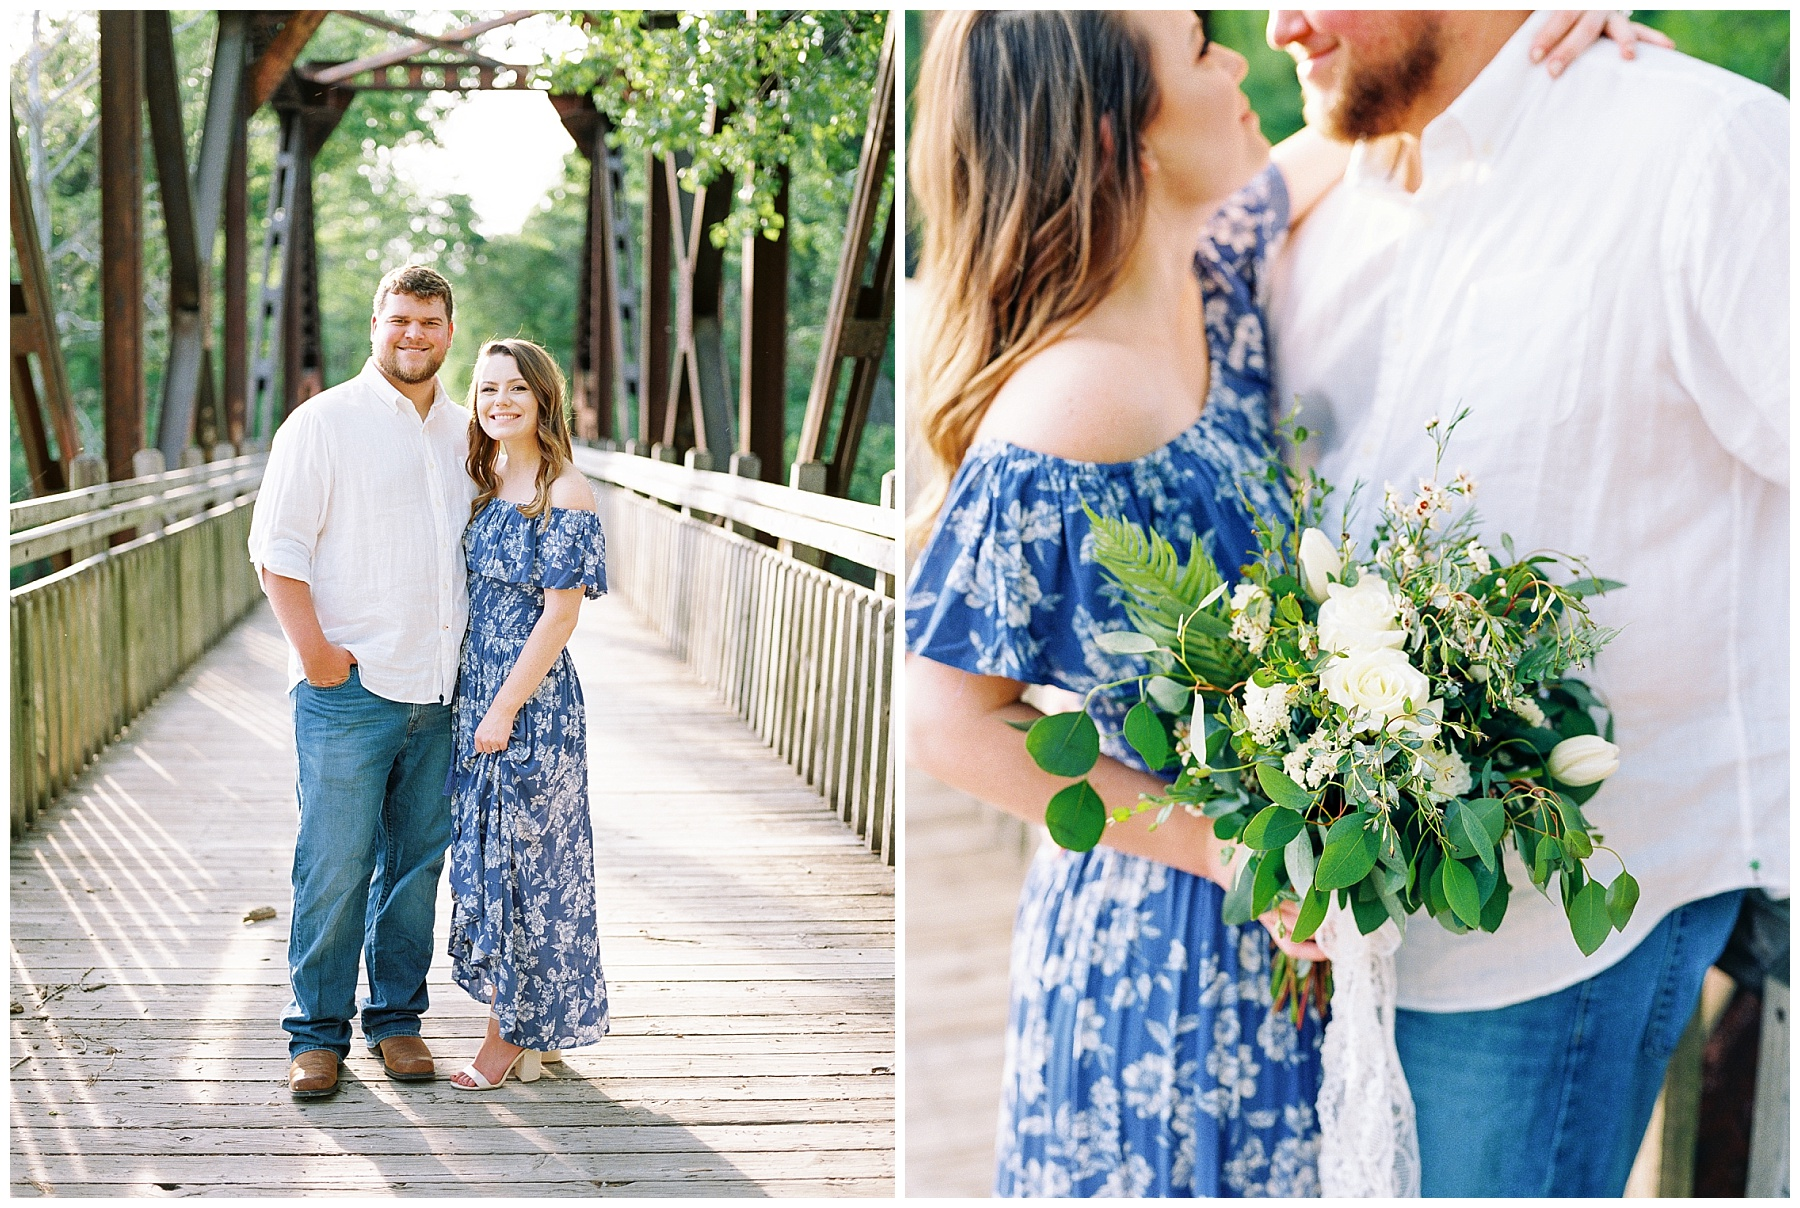 Flirty Spring Engagement Session with Floral Bouquet at Cooper's Landing by Kelsi Kliethermes Photography Best Missouri and Maui Wedding Photographer_0012.jpg